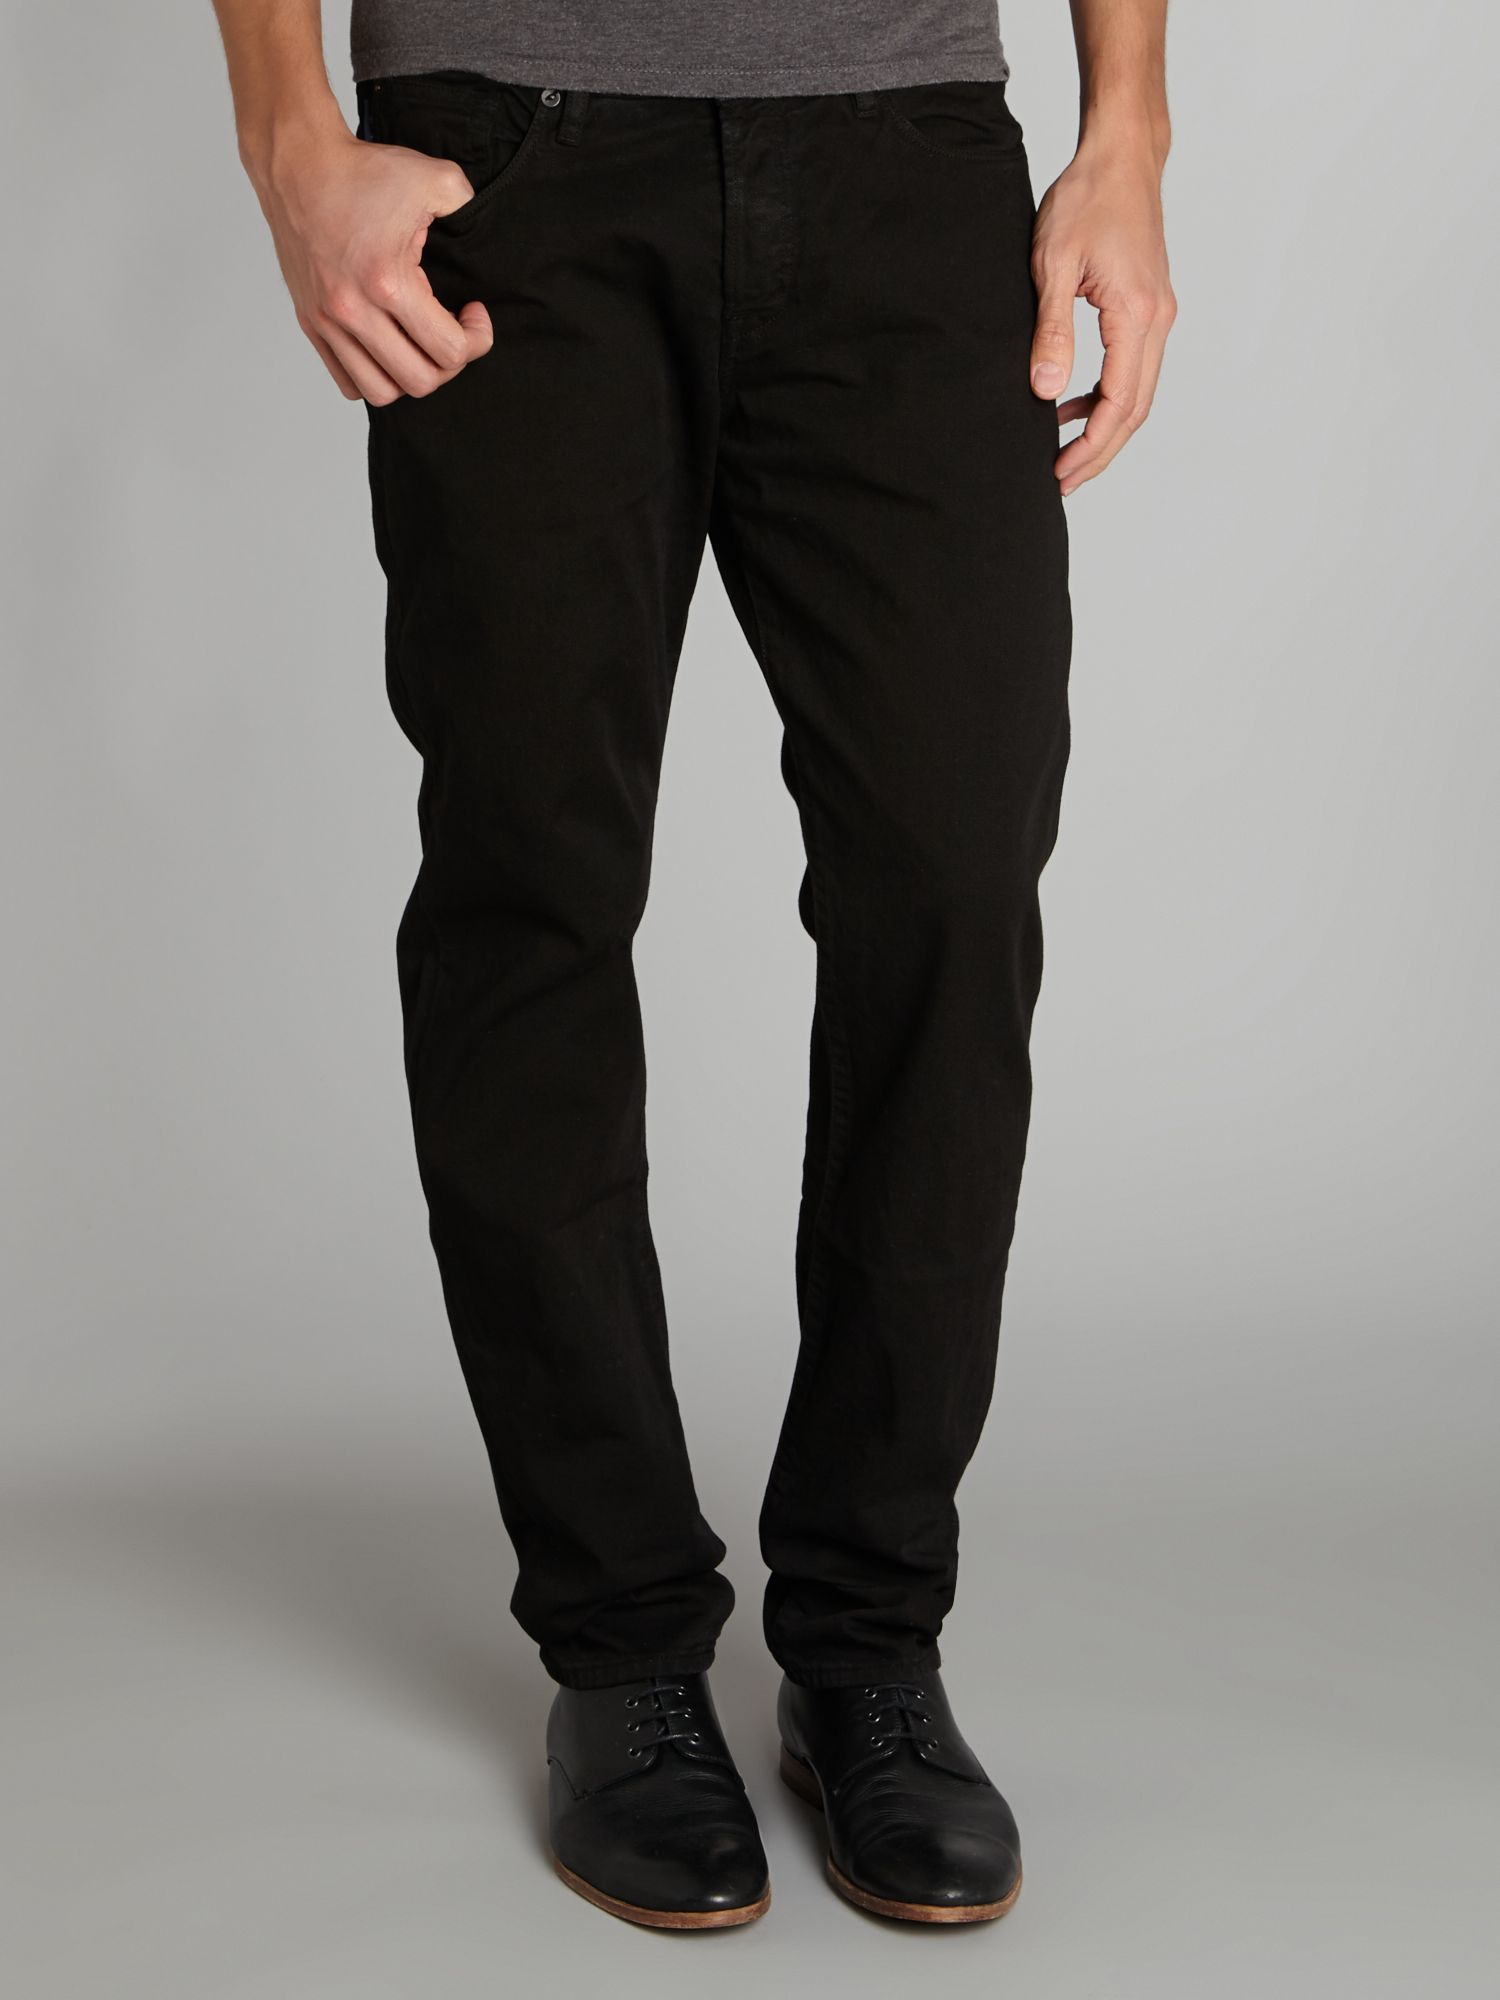 Five pocket twill trouser